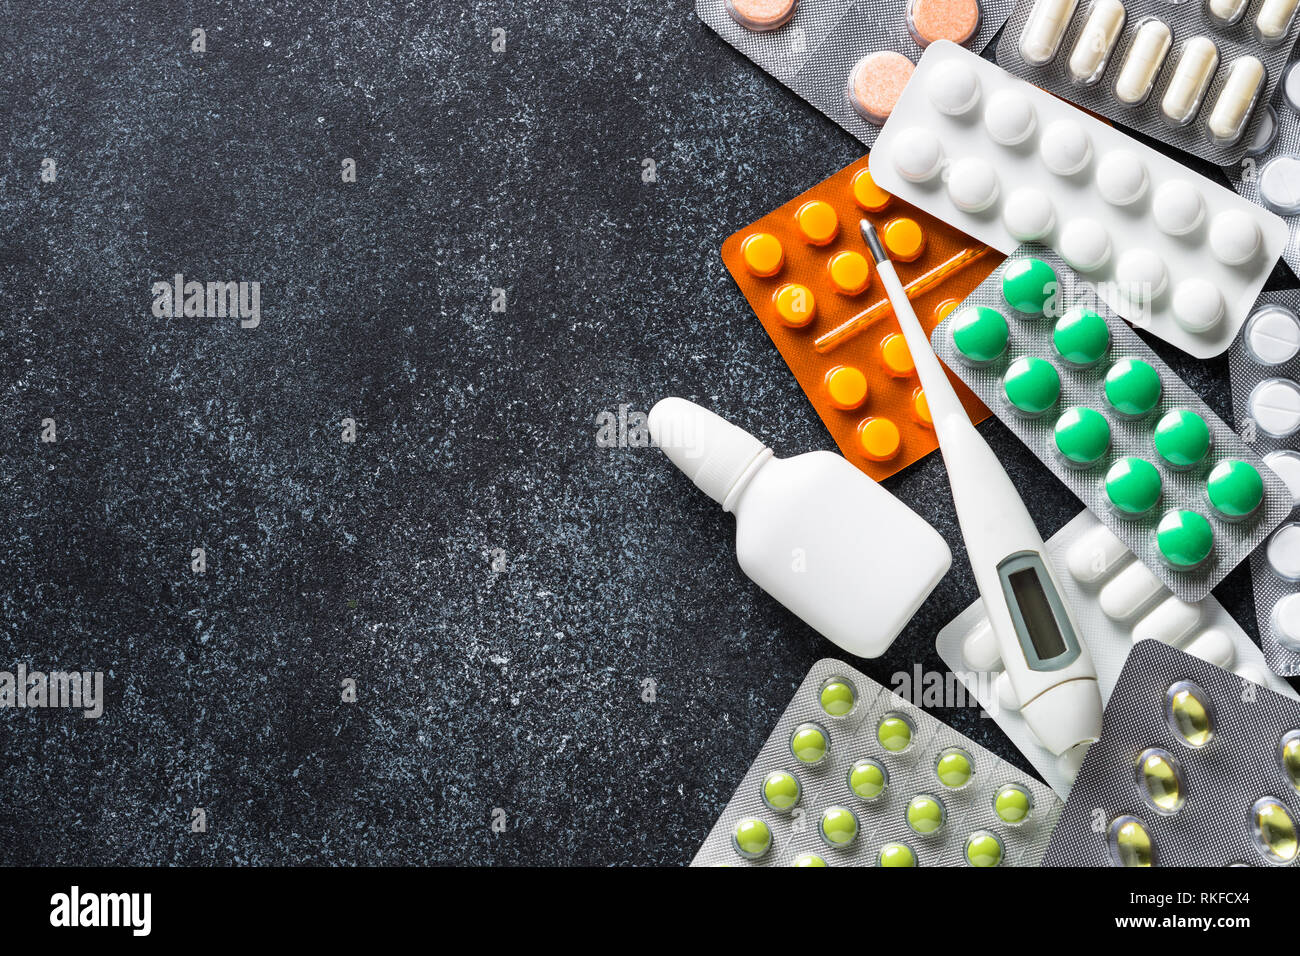 Tablets and medicines on a black top view Stock Photo: 235752668 - Alamy